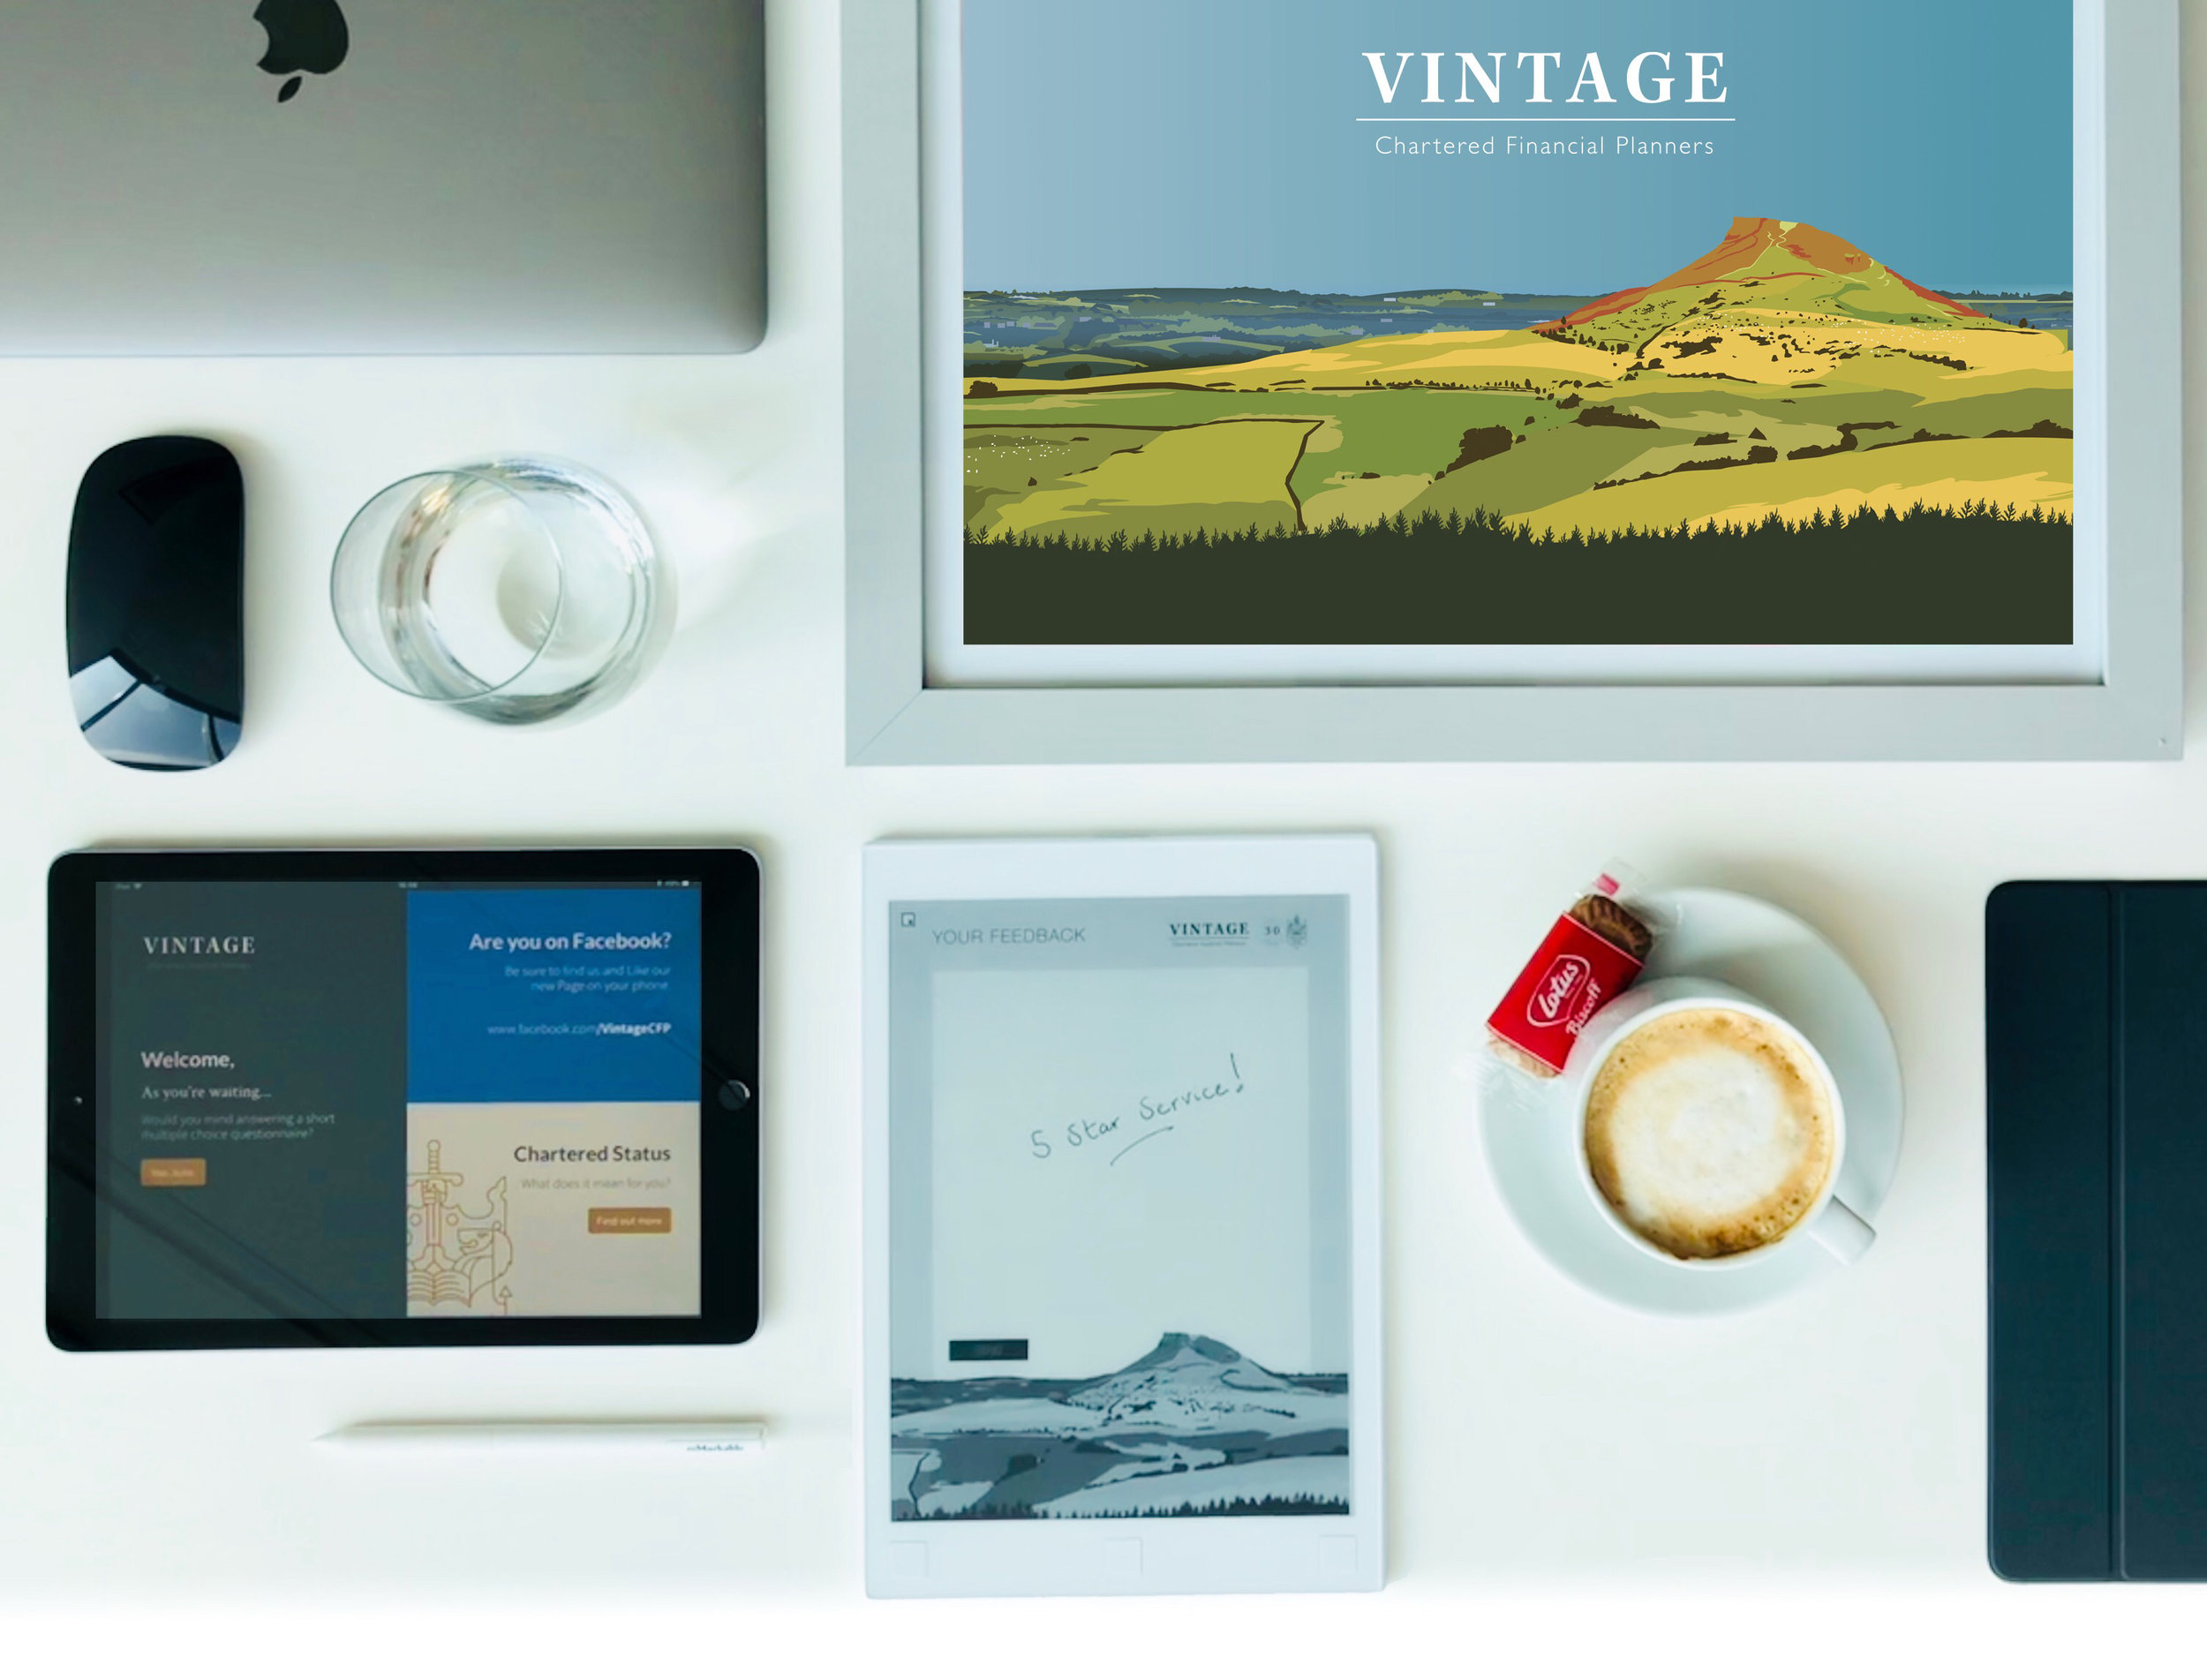 Vintage Chartered Financial Planners - Abby Taylor Artwork